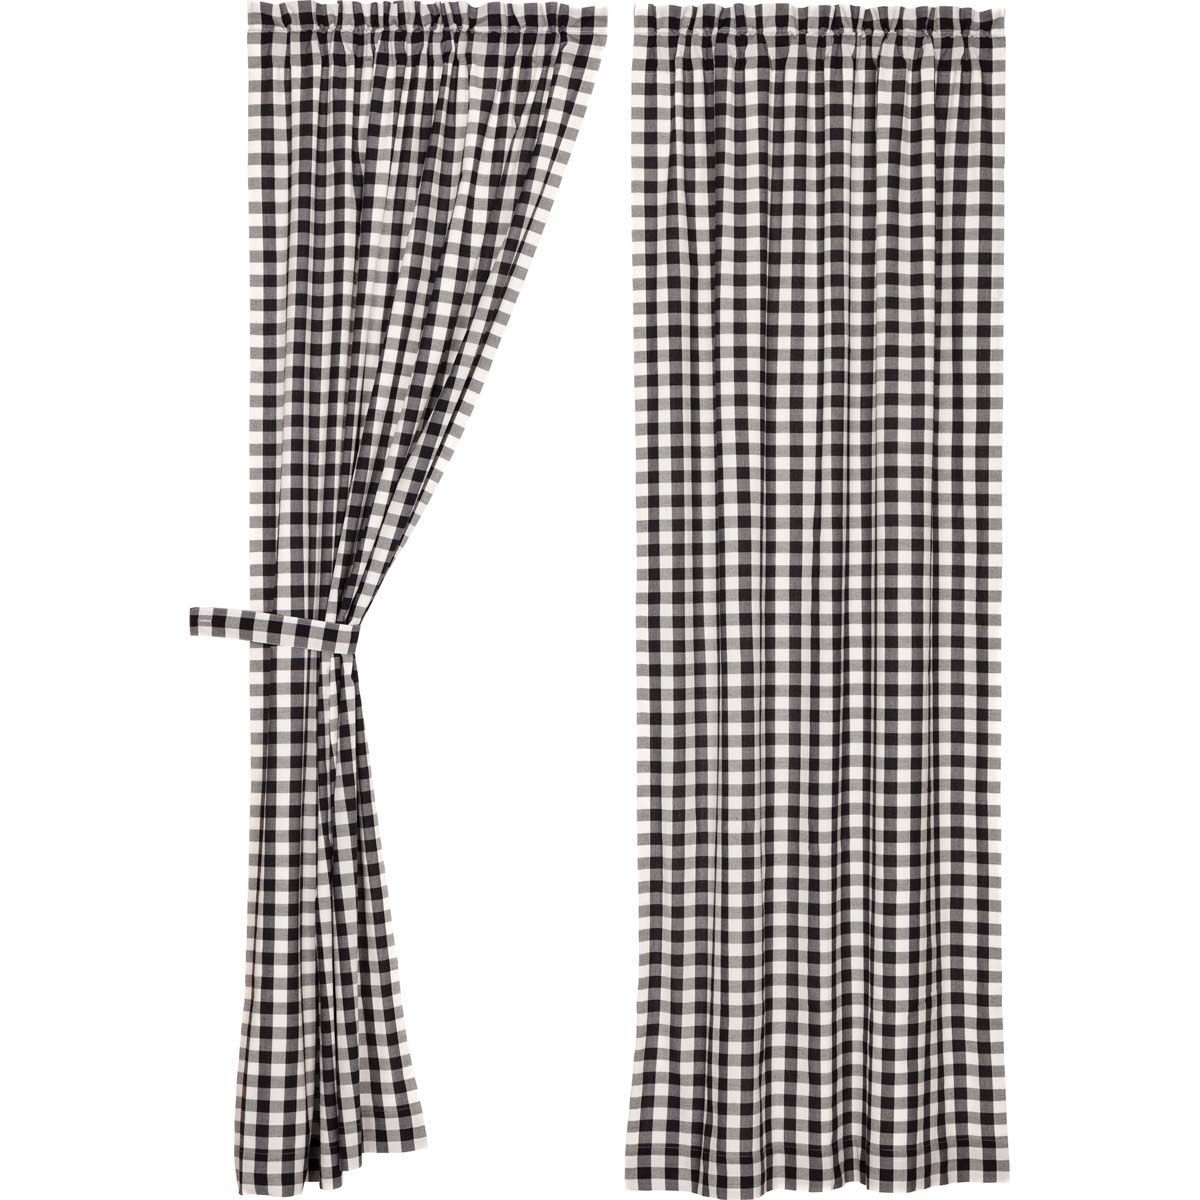 Annie Buffalo Black Check Panel Set of 2 84x40